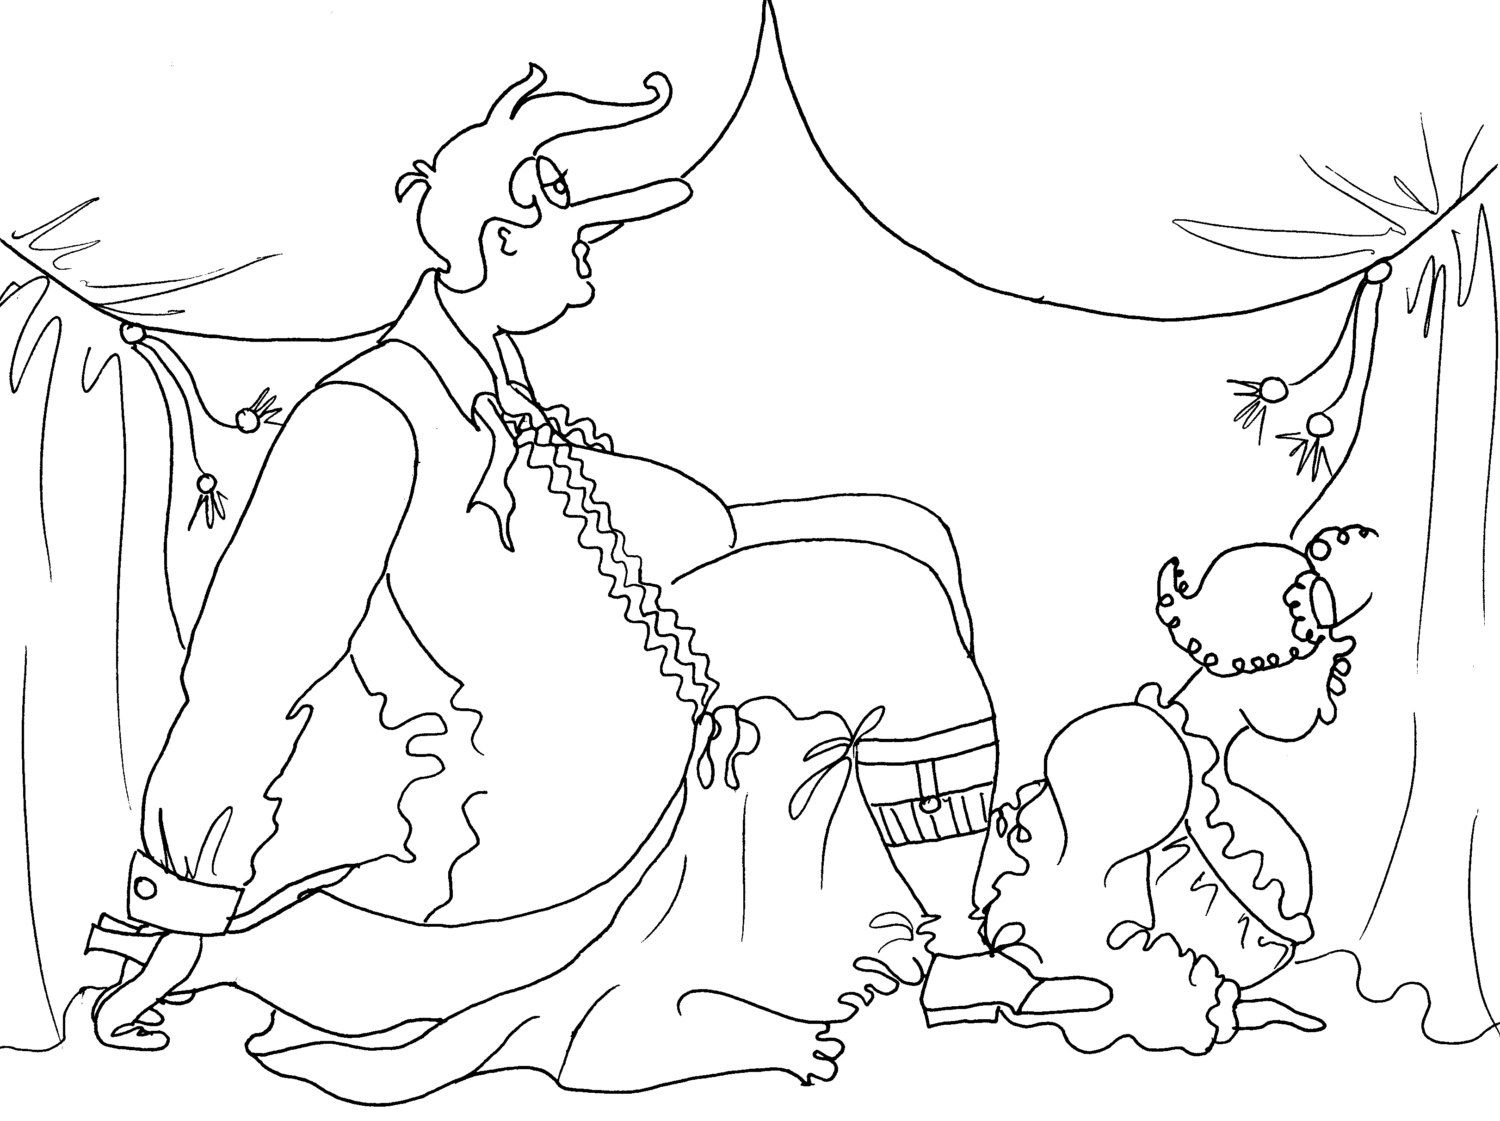 The Landslide Kama Sutra Pose - Sexy Coloring Pages from the Chubby ...